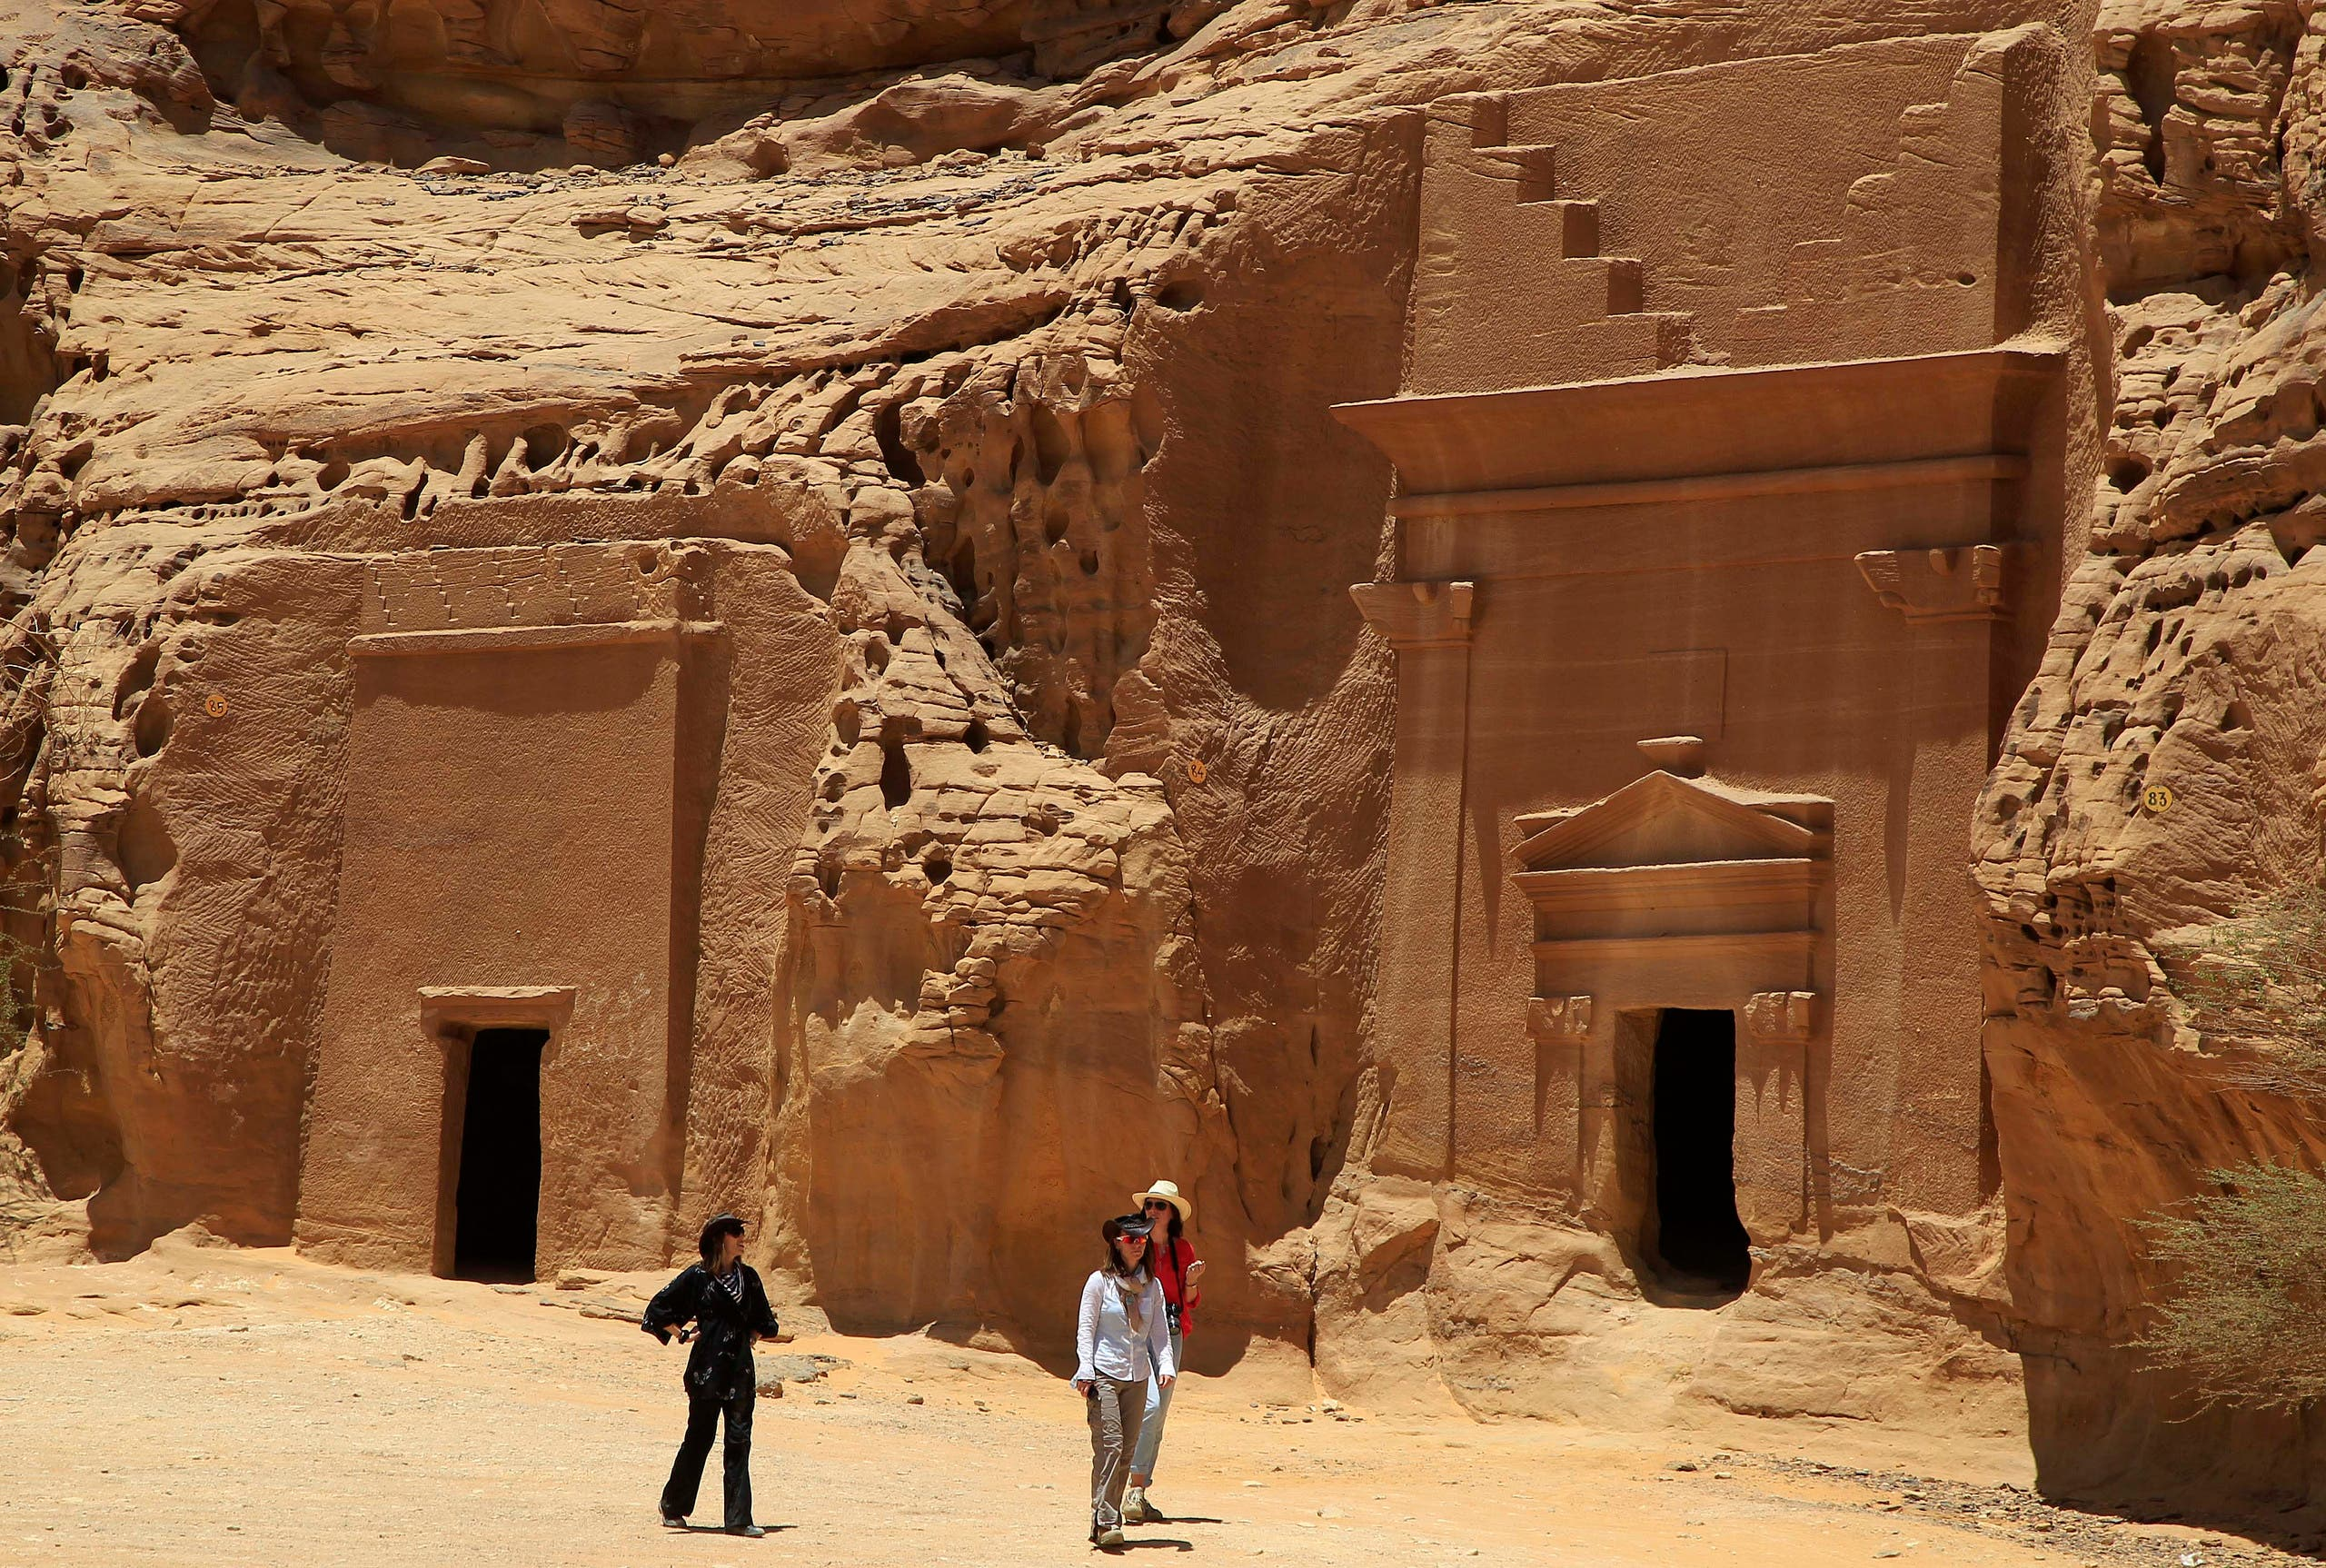 Foreign tourists visit a Nabataean tombs complex in the desert archaeological site of Madain Saleh, in Al Ula, Saudi Arabia on May 10, 2012. (AP)